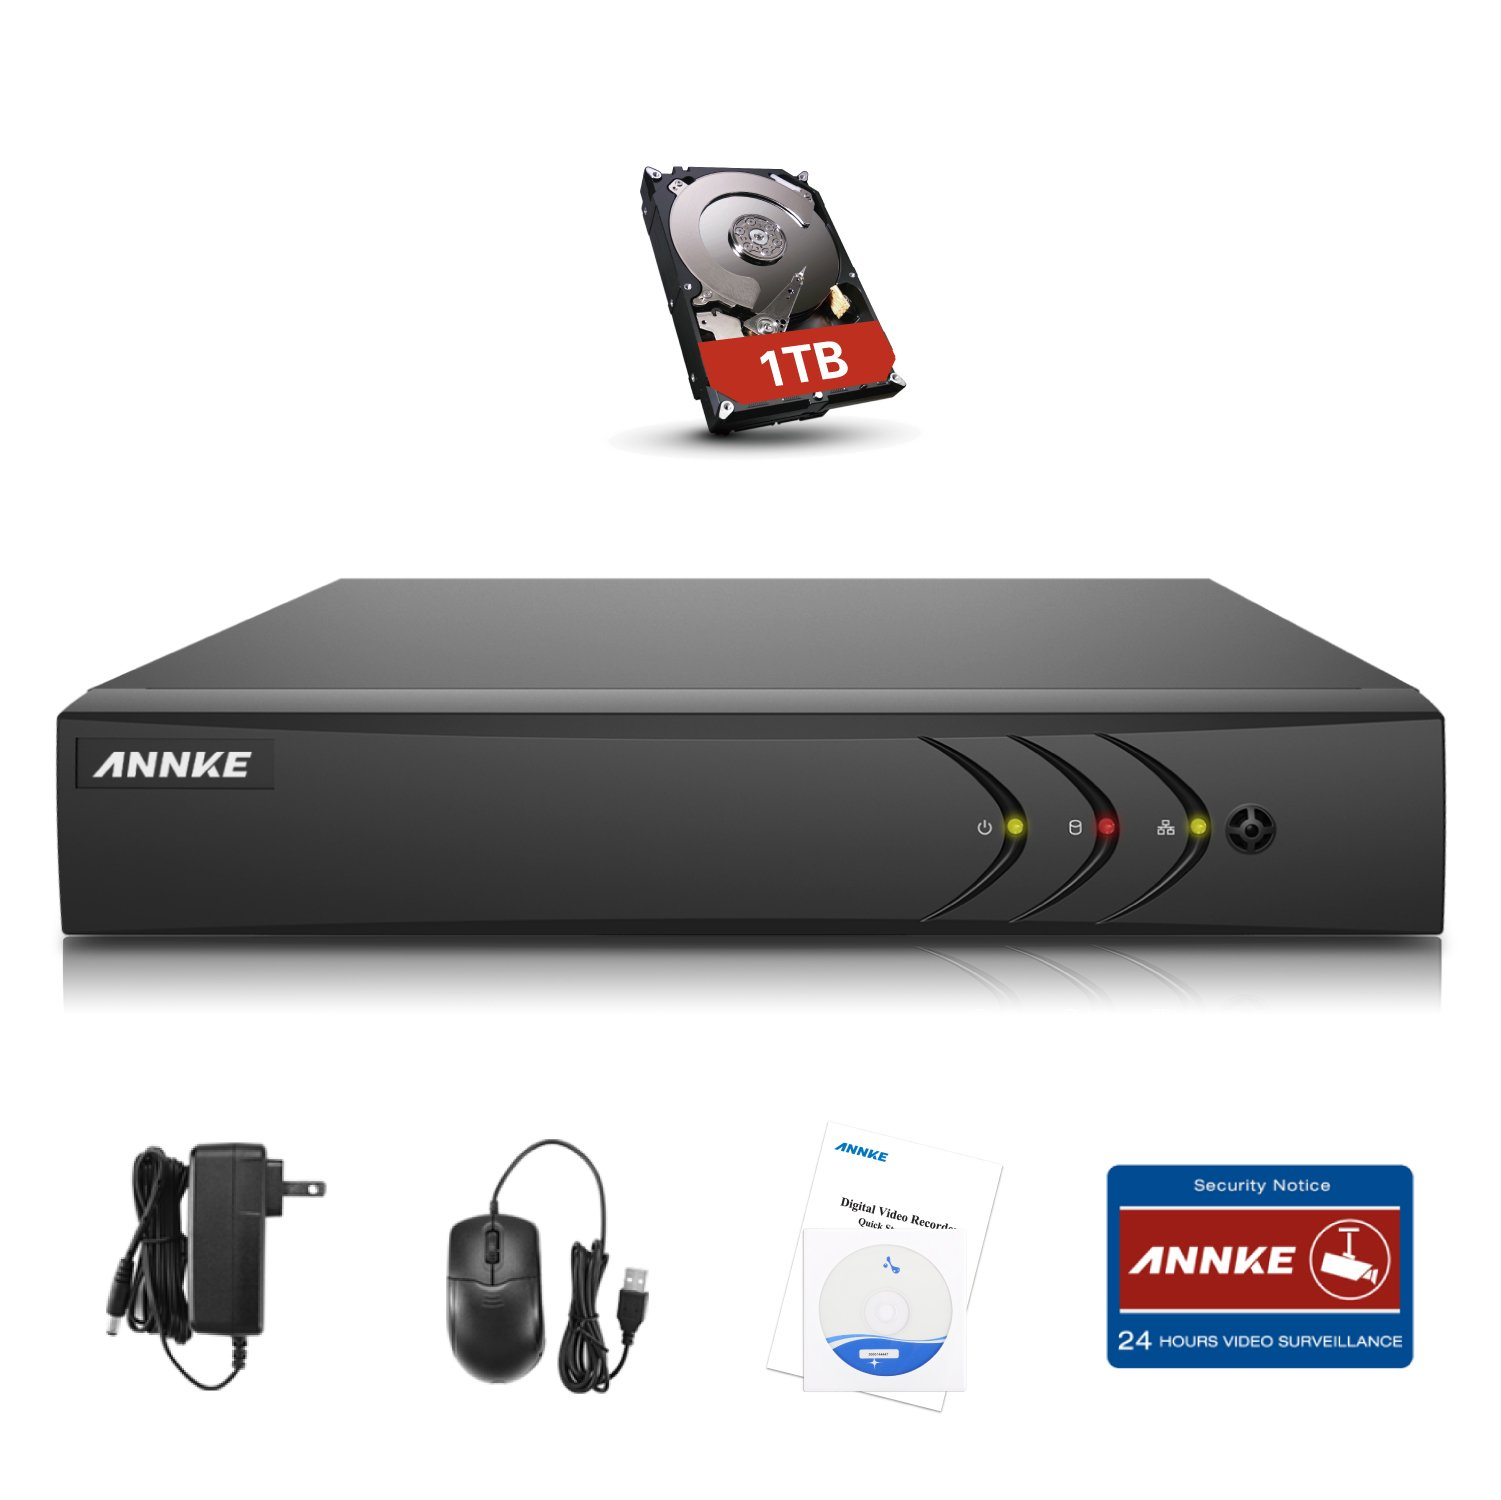 Annke 16CH 1080P Lite DVR 5-in-1 Security DVR Recorder with 1TB Hard Drive, HDMI/VGA Quck QR Code Scan Easy Remote Access Motion Detection &Eamil Alerts by ANNKE